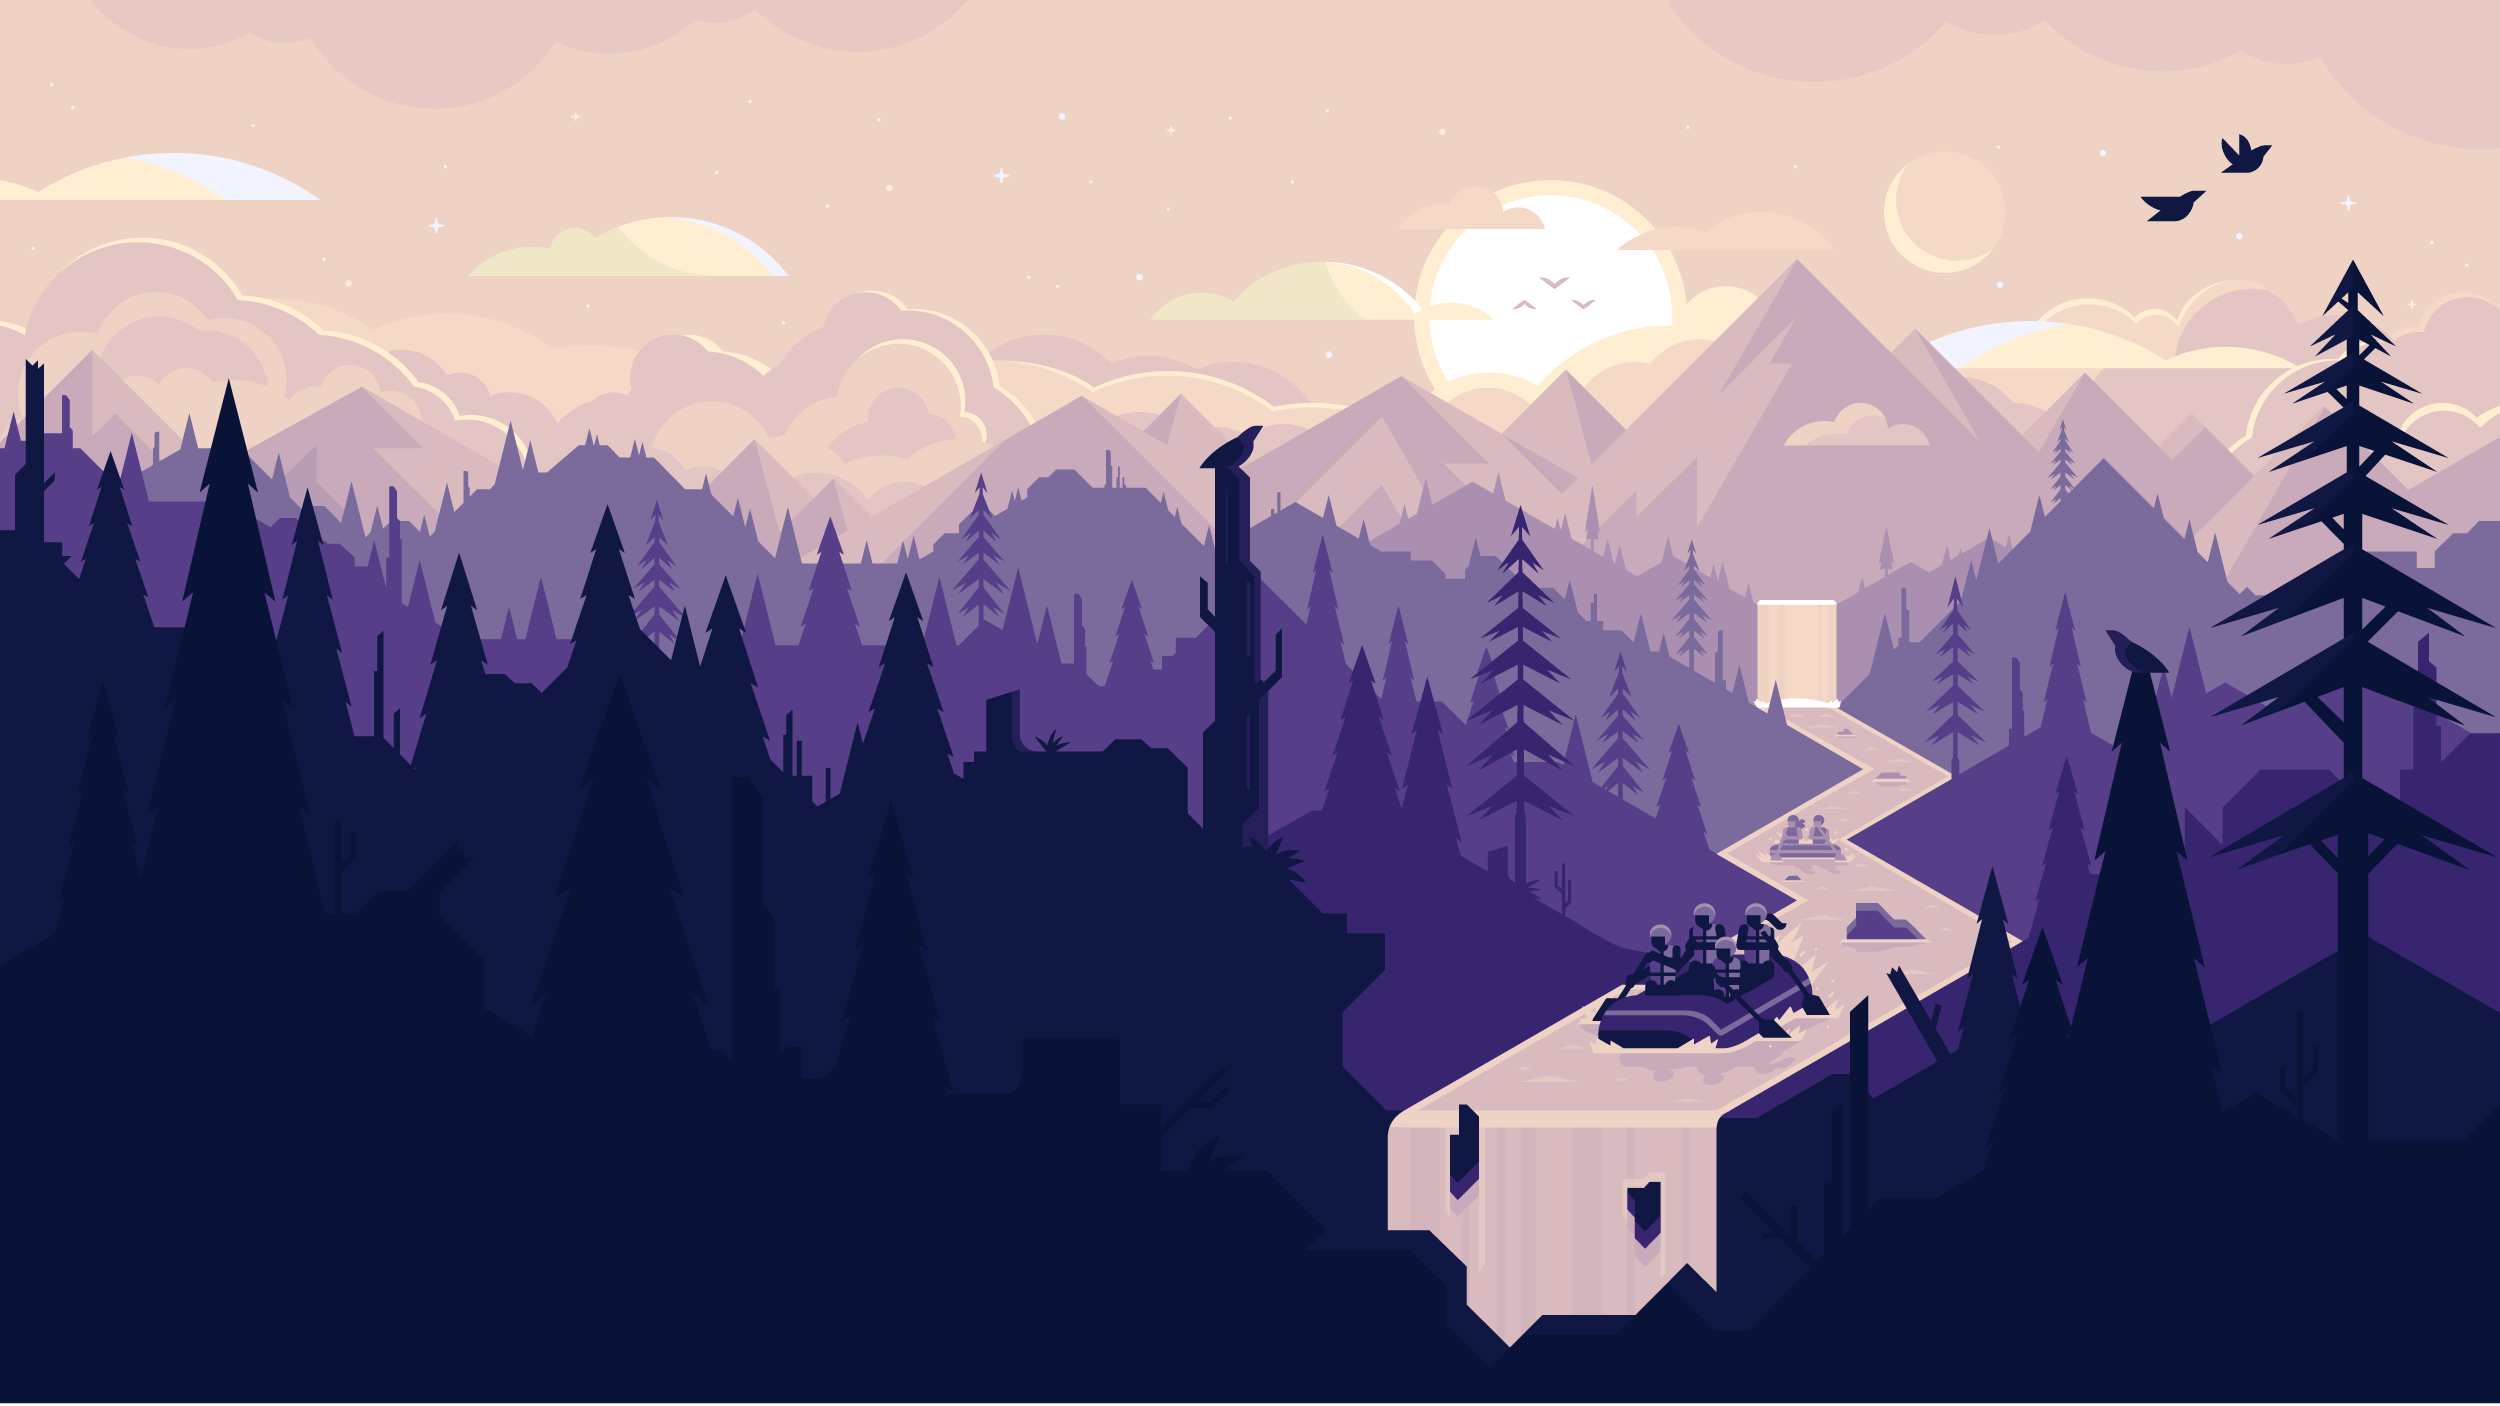 White water rafting sunset scene with limited color palette. Illustration by Matt Anderson.